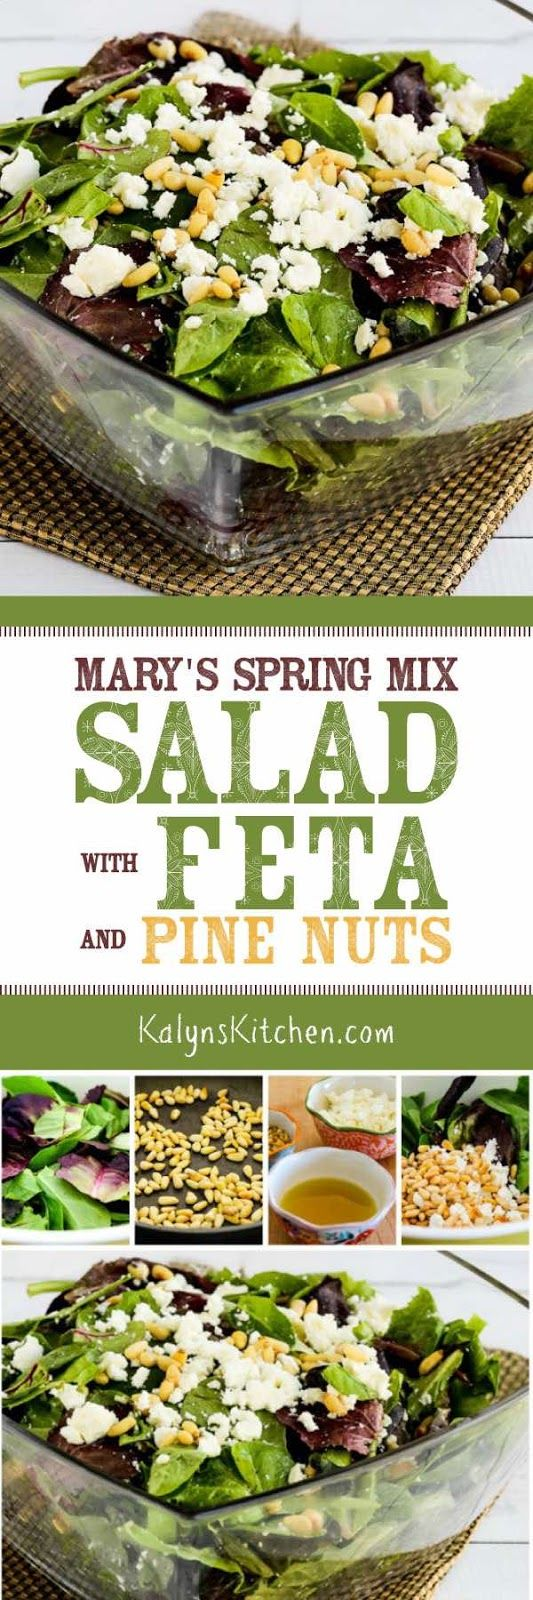 Mary's Spring Mix Salad with Feta and Pine Nuts is a quick and easy low-carb and gluten-free salad I make over and over when I'm trying to eat more greens. And this tasty salad is always a treat because FETA! PINE NUTS! [found on KalynsKitchen.com]